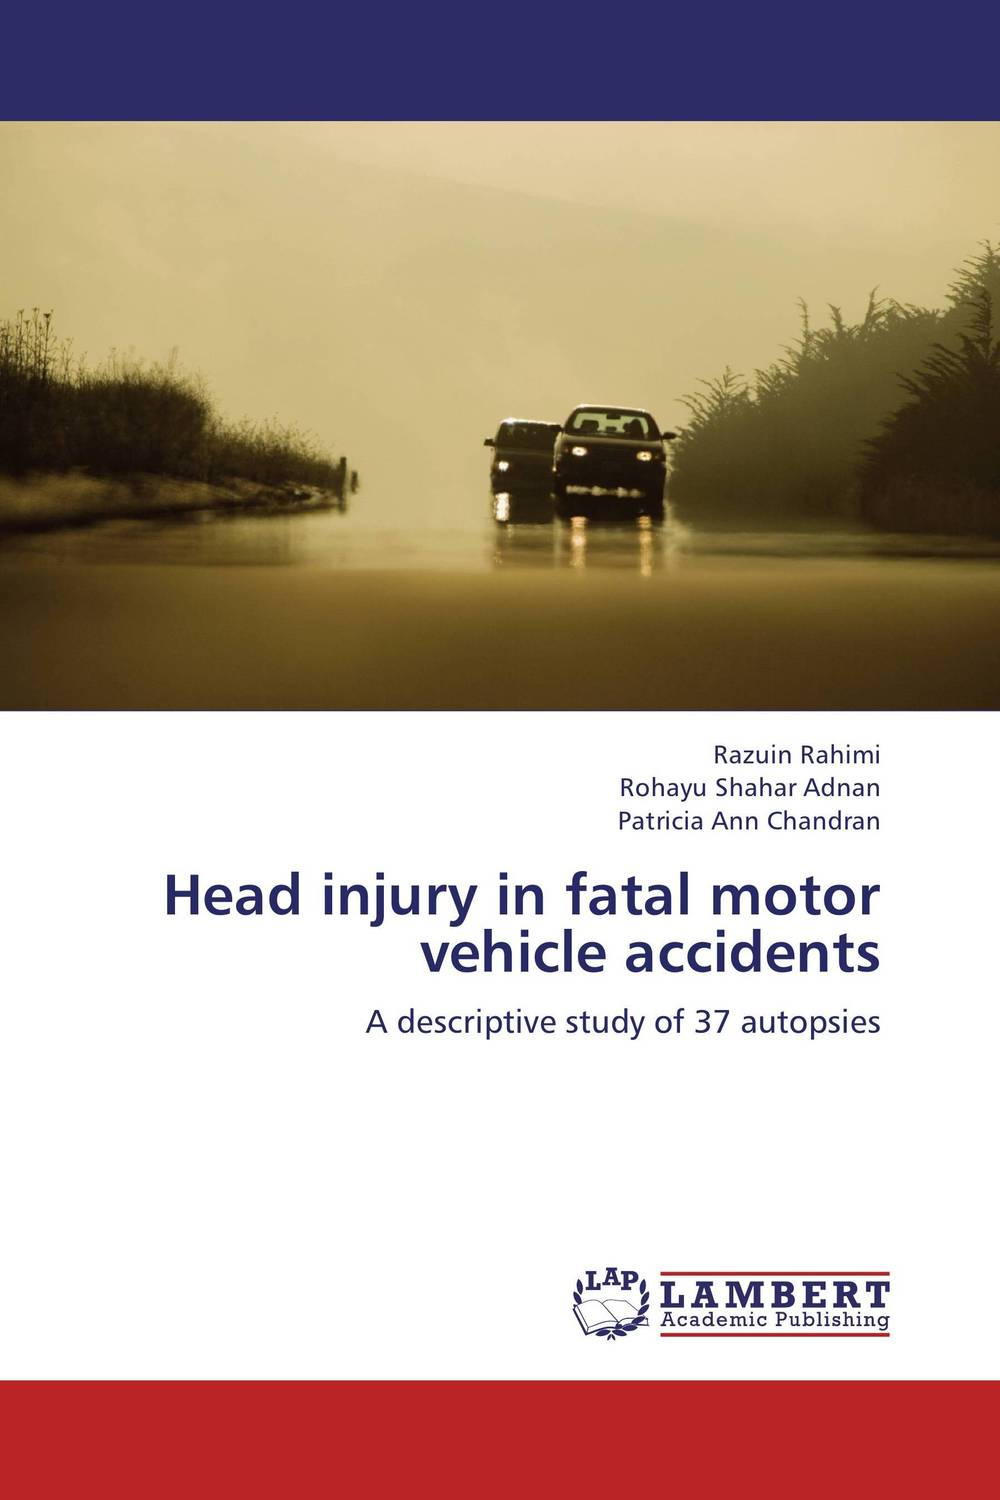 Head injury in fatal motor vehicle accidents biomarkers of brain injury in children potential uses and limitations